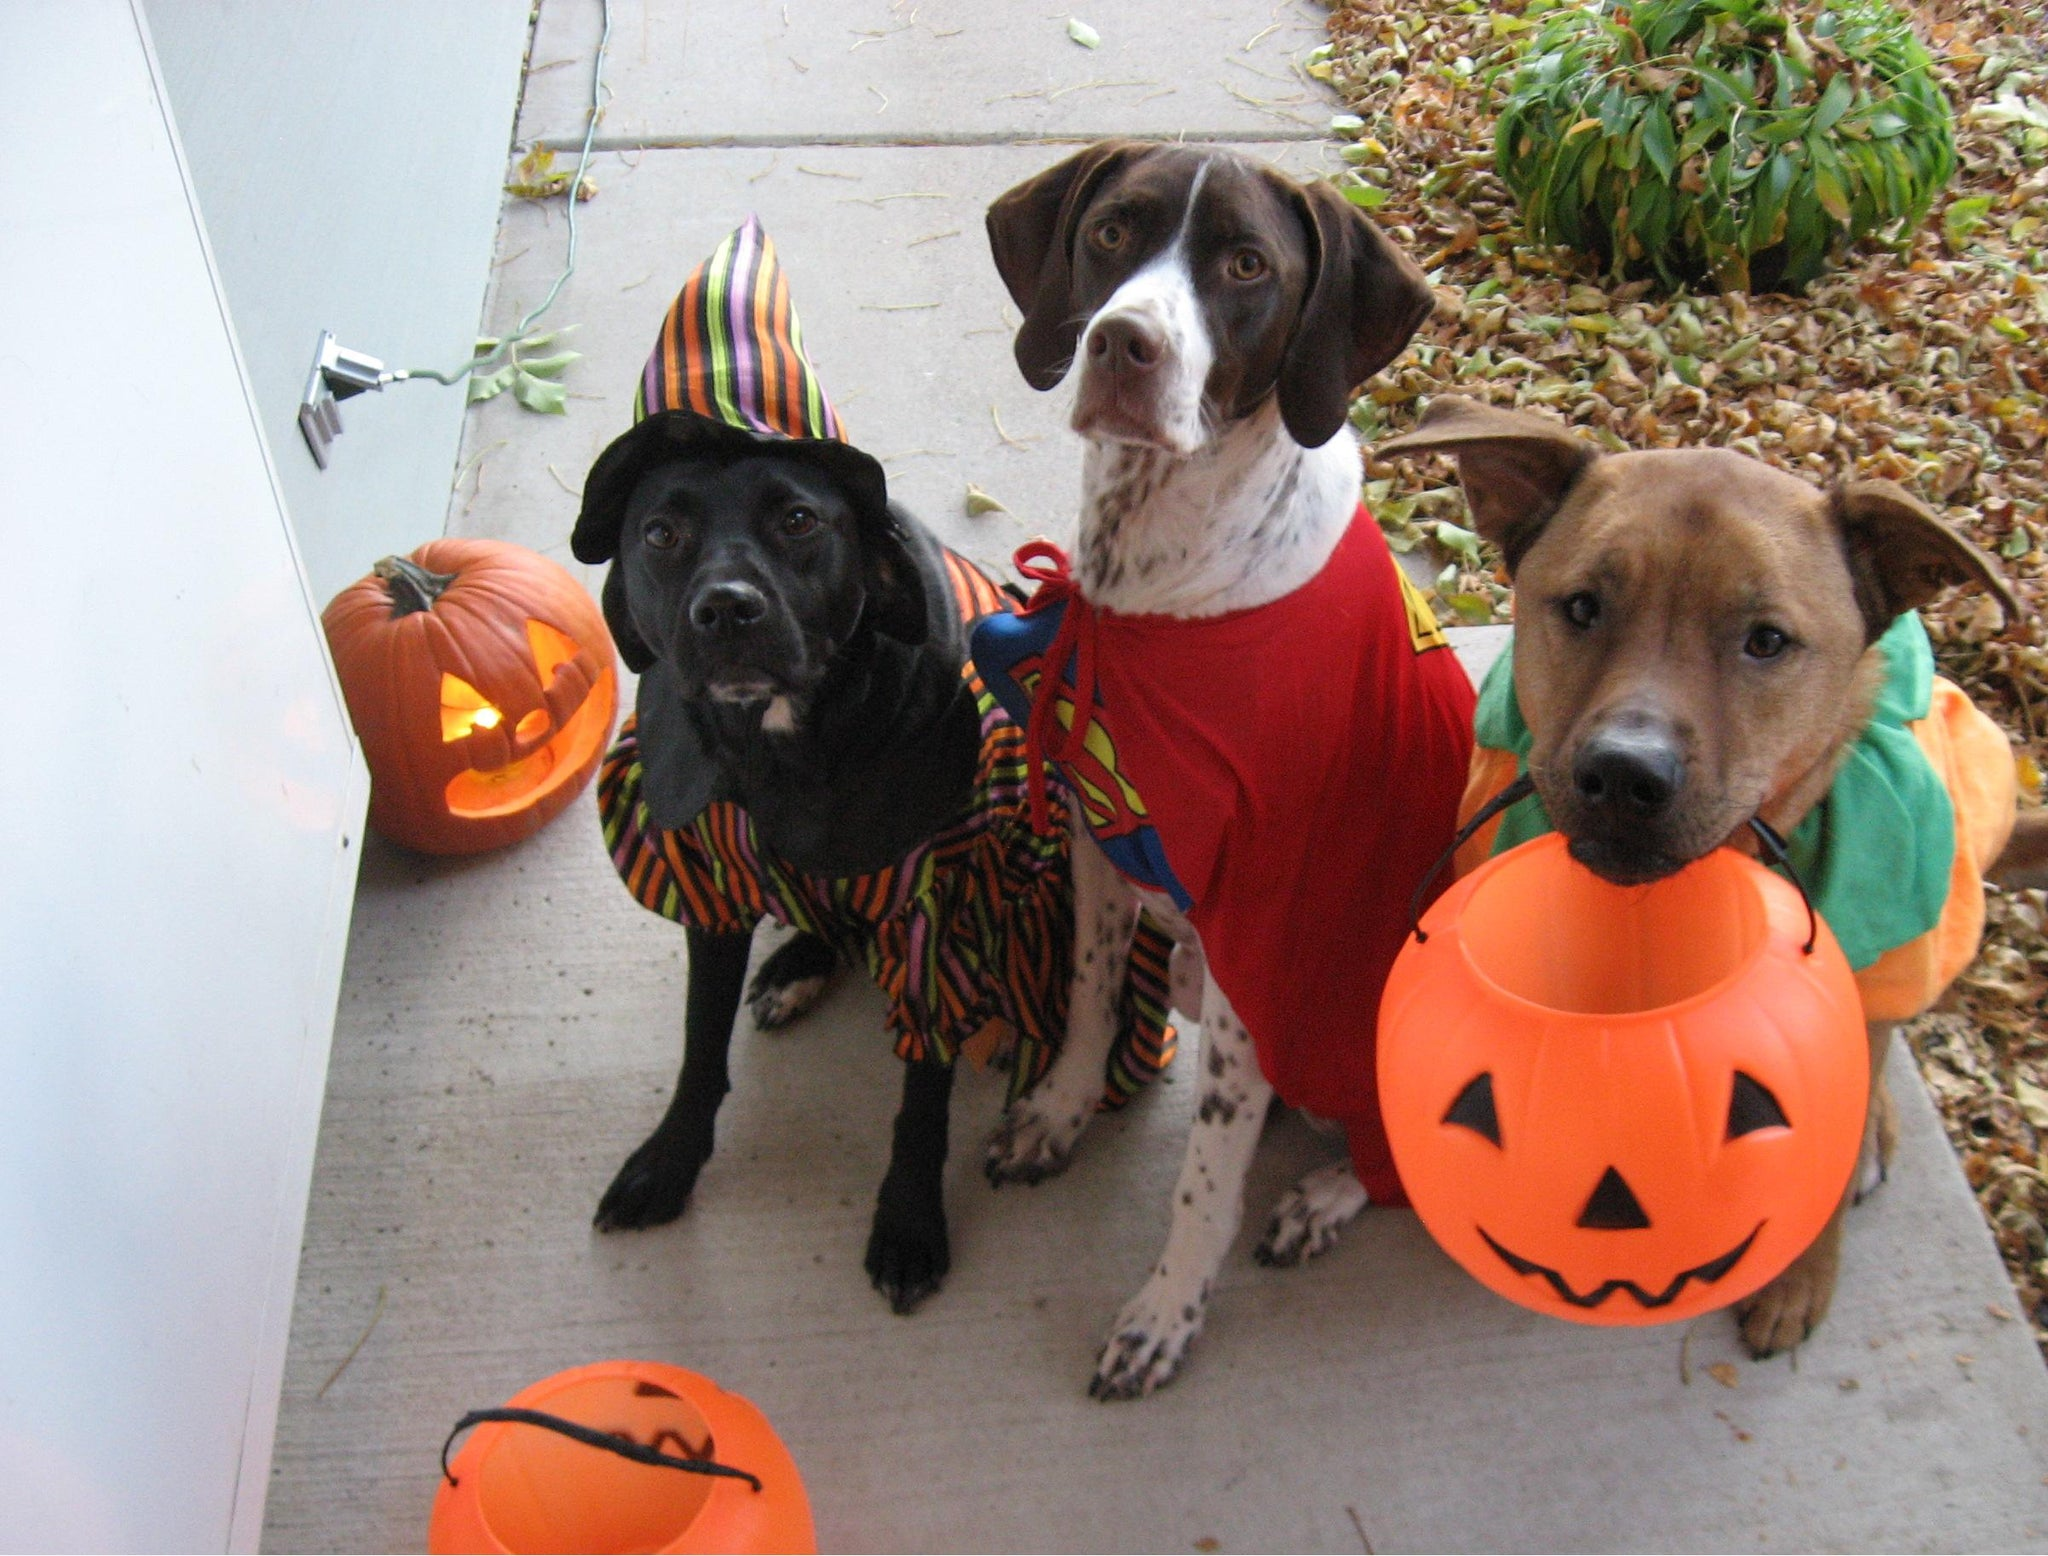 Halloween Safety Tips from the ASPCA